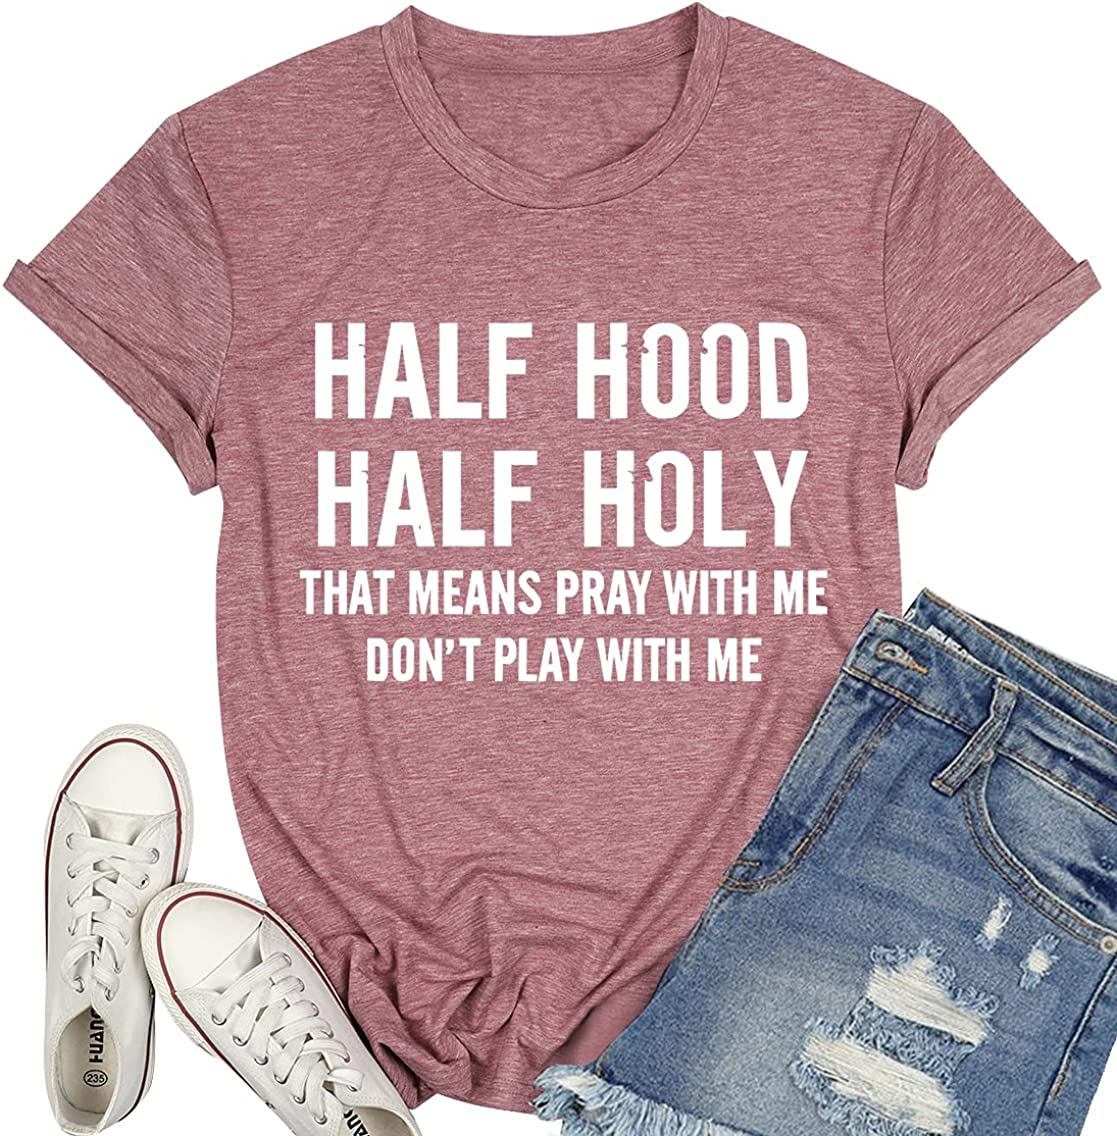 Half Hood Half Holy Tshirt Women's Funny Graphic Shirt Short Sleeve Top Loose Fit Christian Tees with Saying